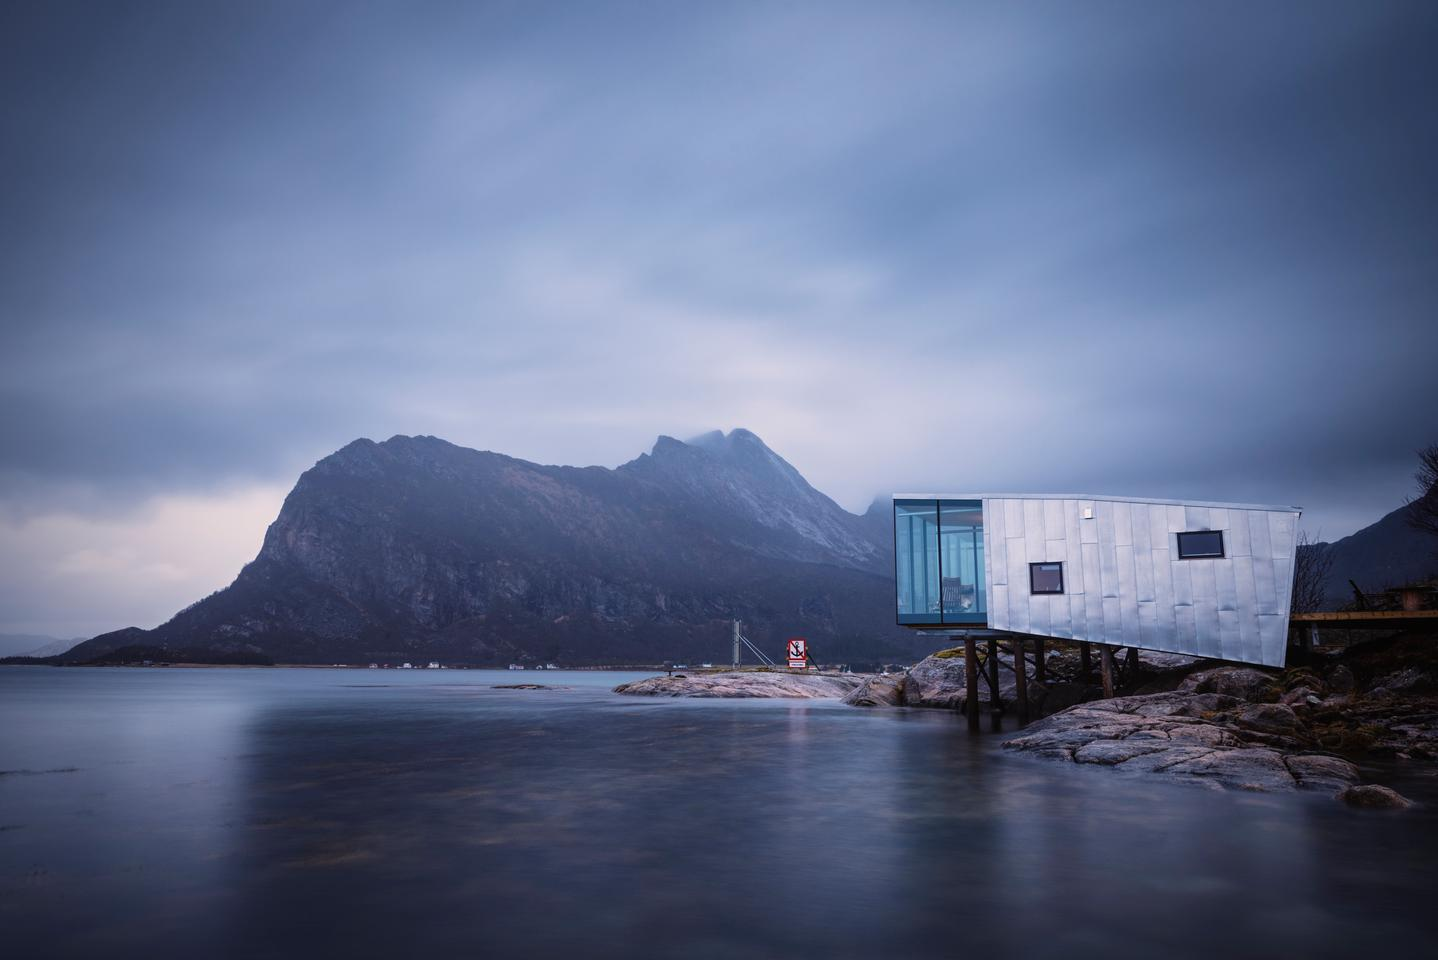 Some of the recreational activities on offer on the island of Manshausen include diving, hiking and kayaking, and the original set of four cabins completed in 2015 offered a place of refuge